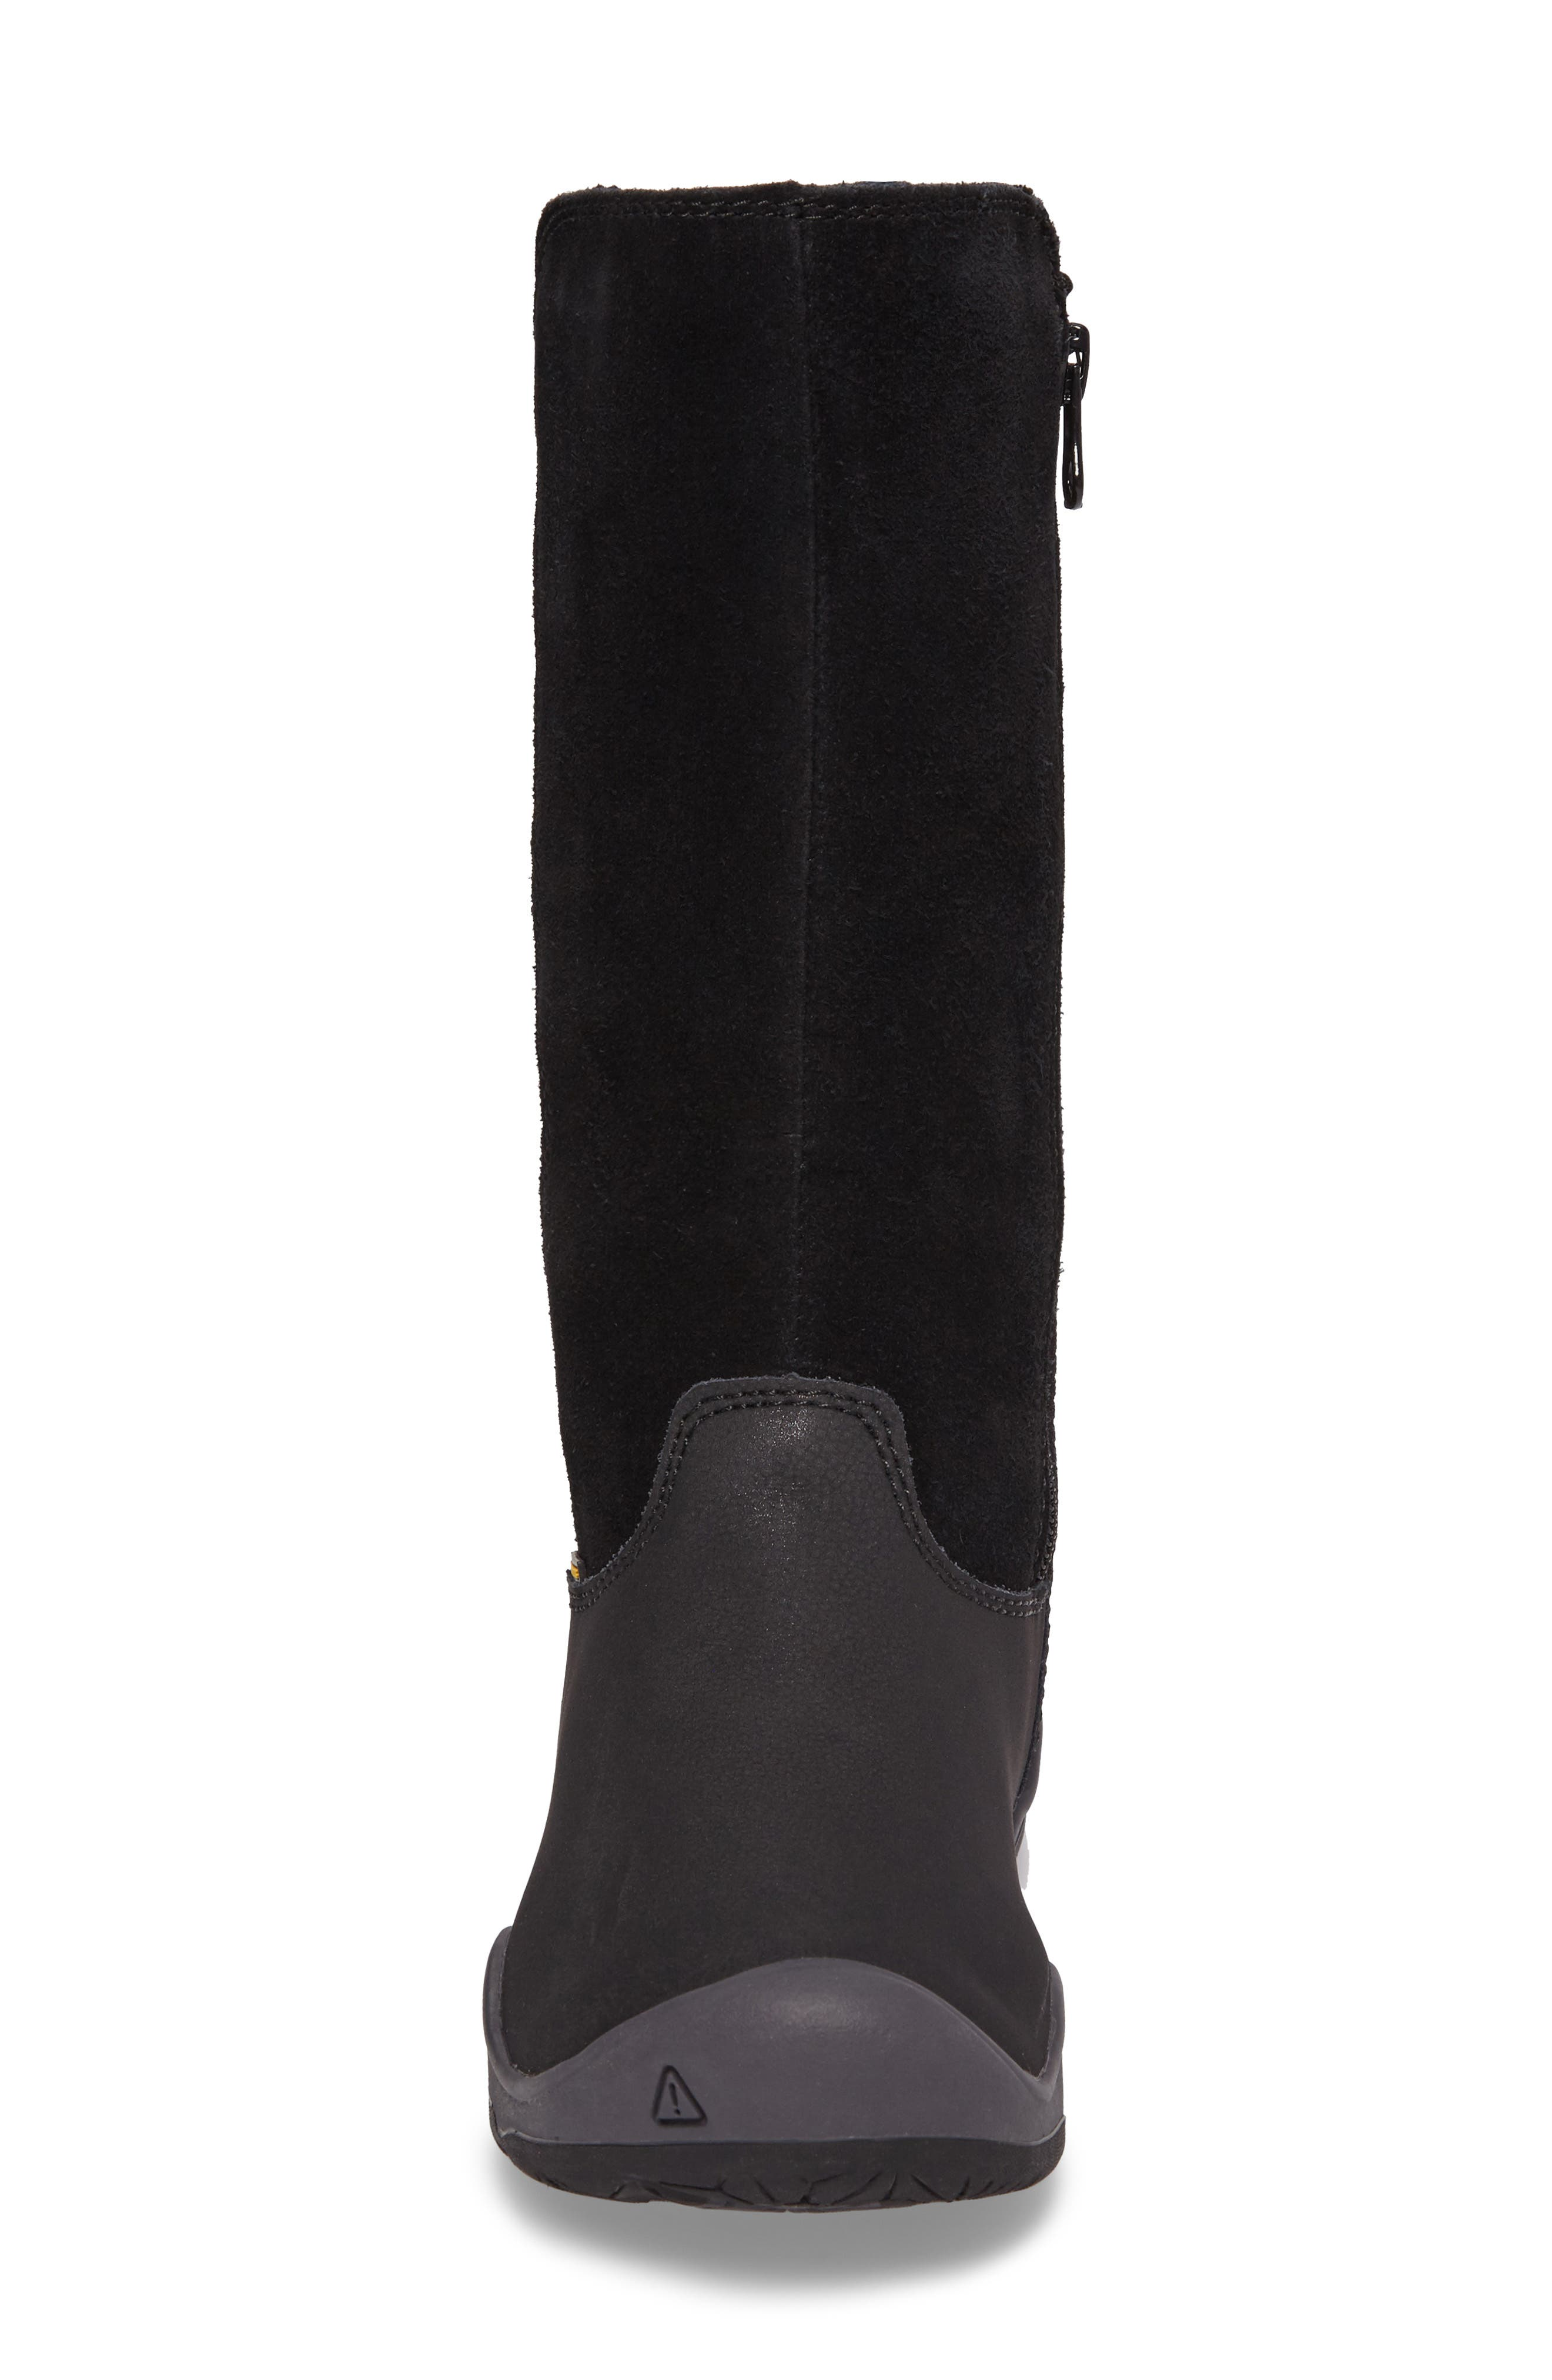 Moxie Tall Waterproof Boot,                             Alternate thumbnail 4, color,                             Black/ Magnet